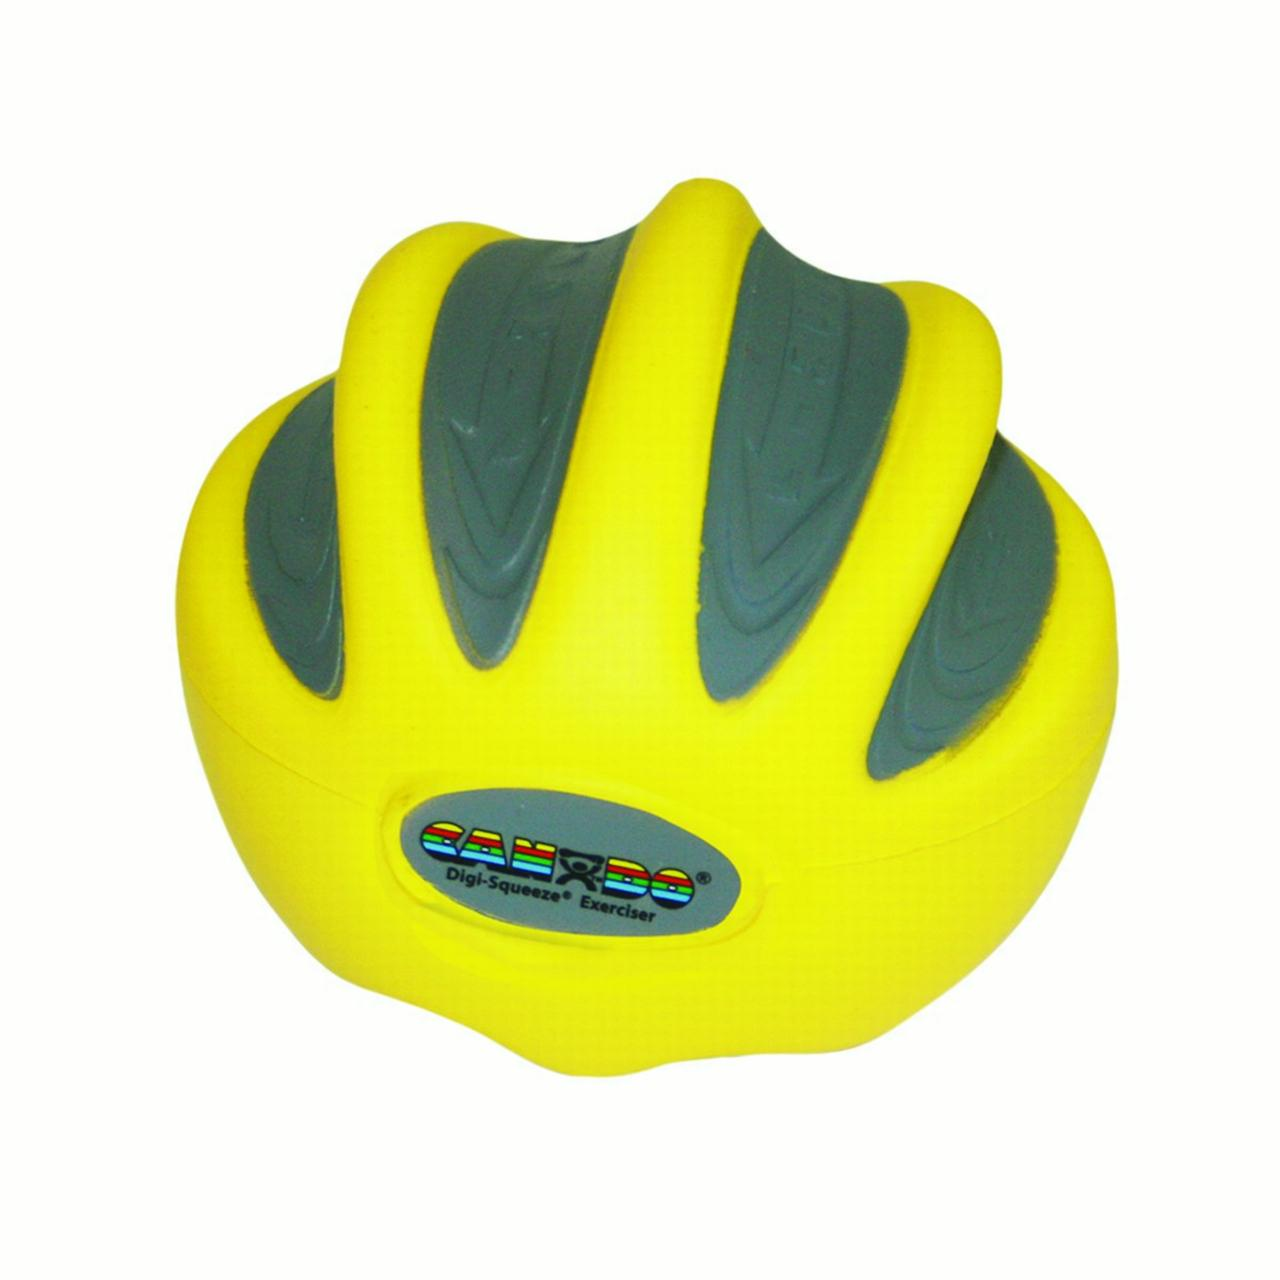 CanDo Digi-Squeeze Hand Exerciser, Medium, Yellow, X-Light